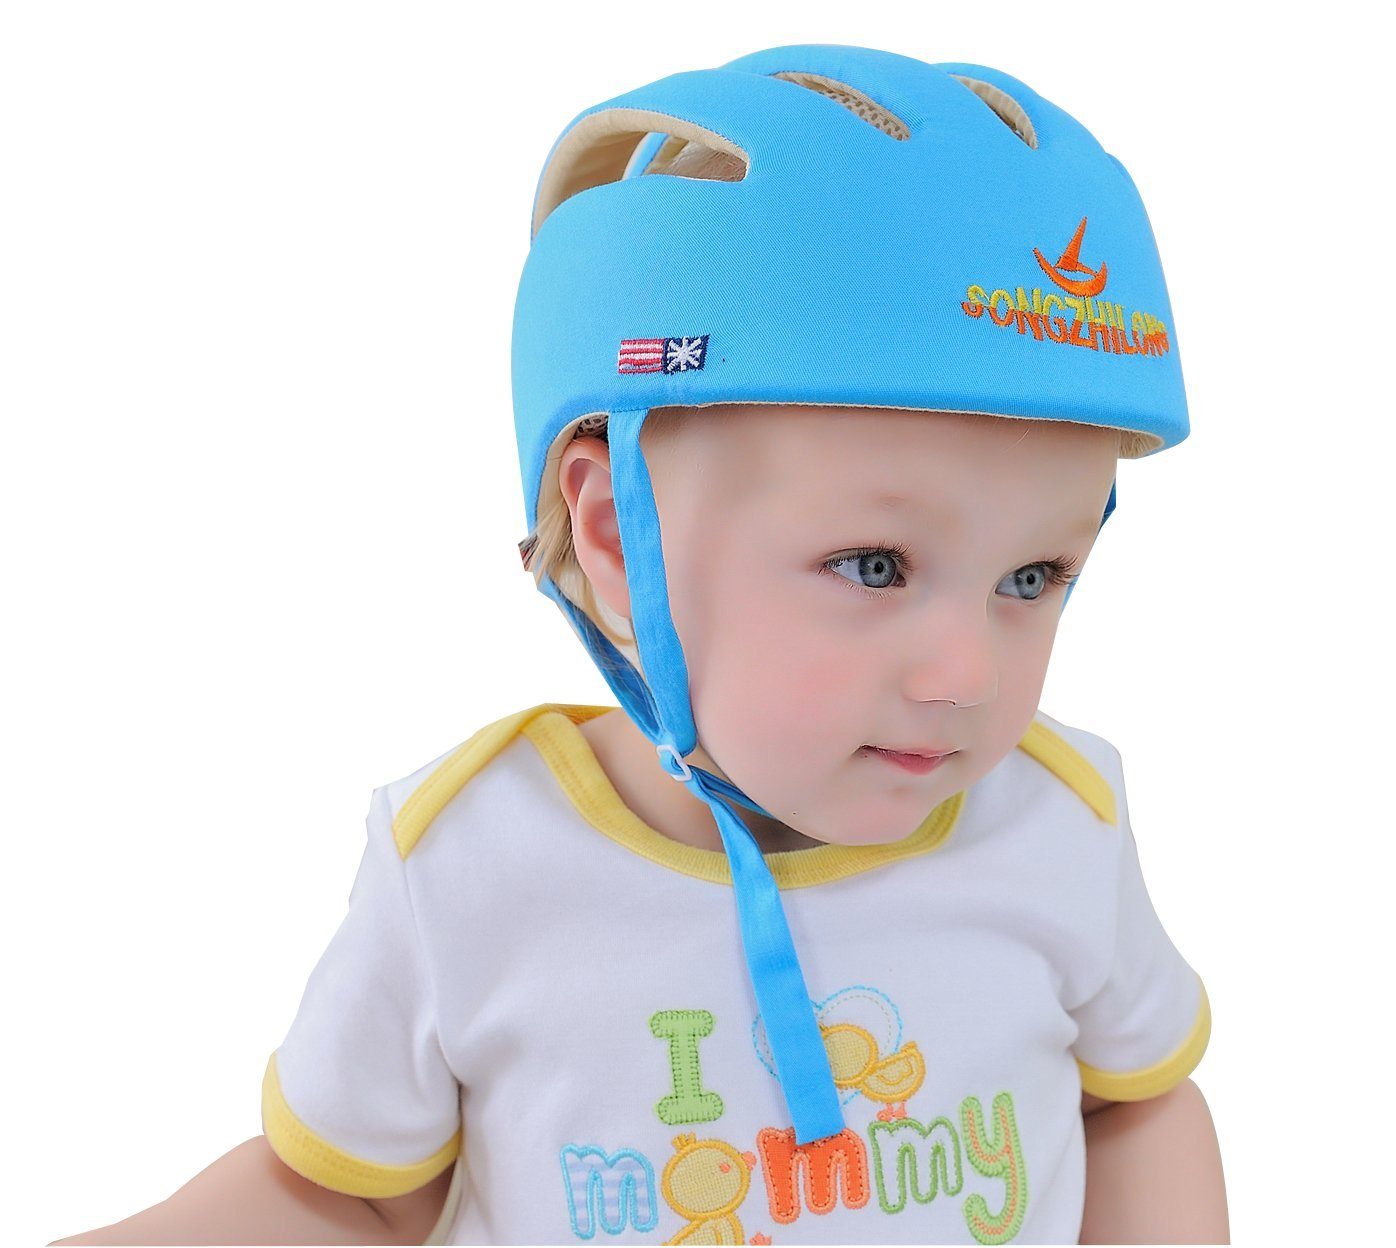 Huifen Baby Children Infant Toddler Adjustable Safety Helmet Headguard Protective Harnesses Cap Blue, Providing Safer Environment When Learning to Crawl Walk Playing Baby Infant Blue Hat (Blue) by Huifen (Image #8)